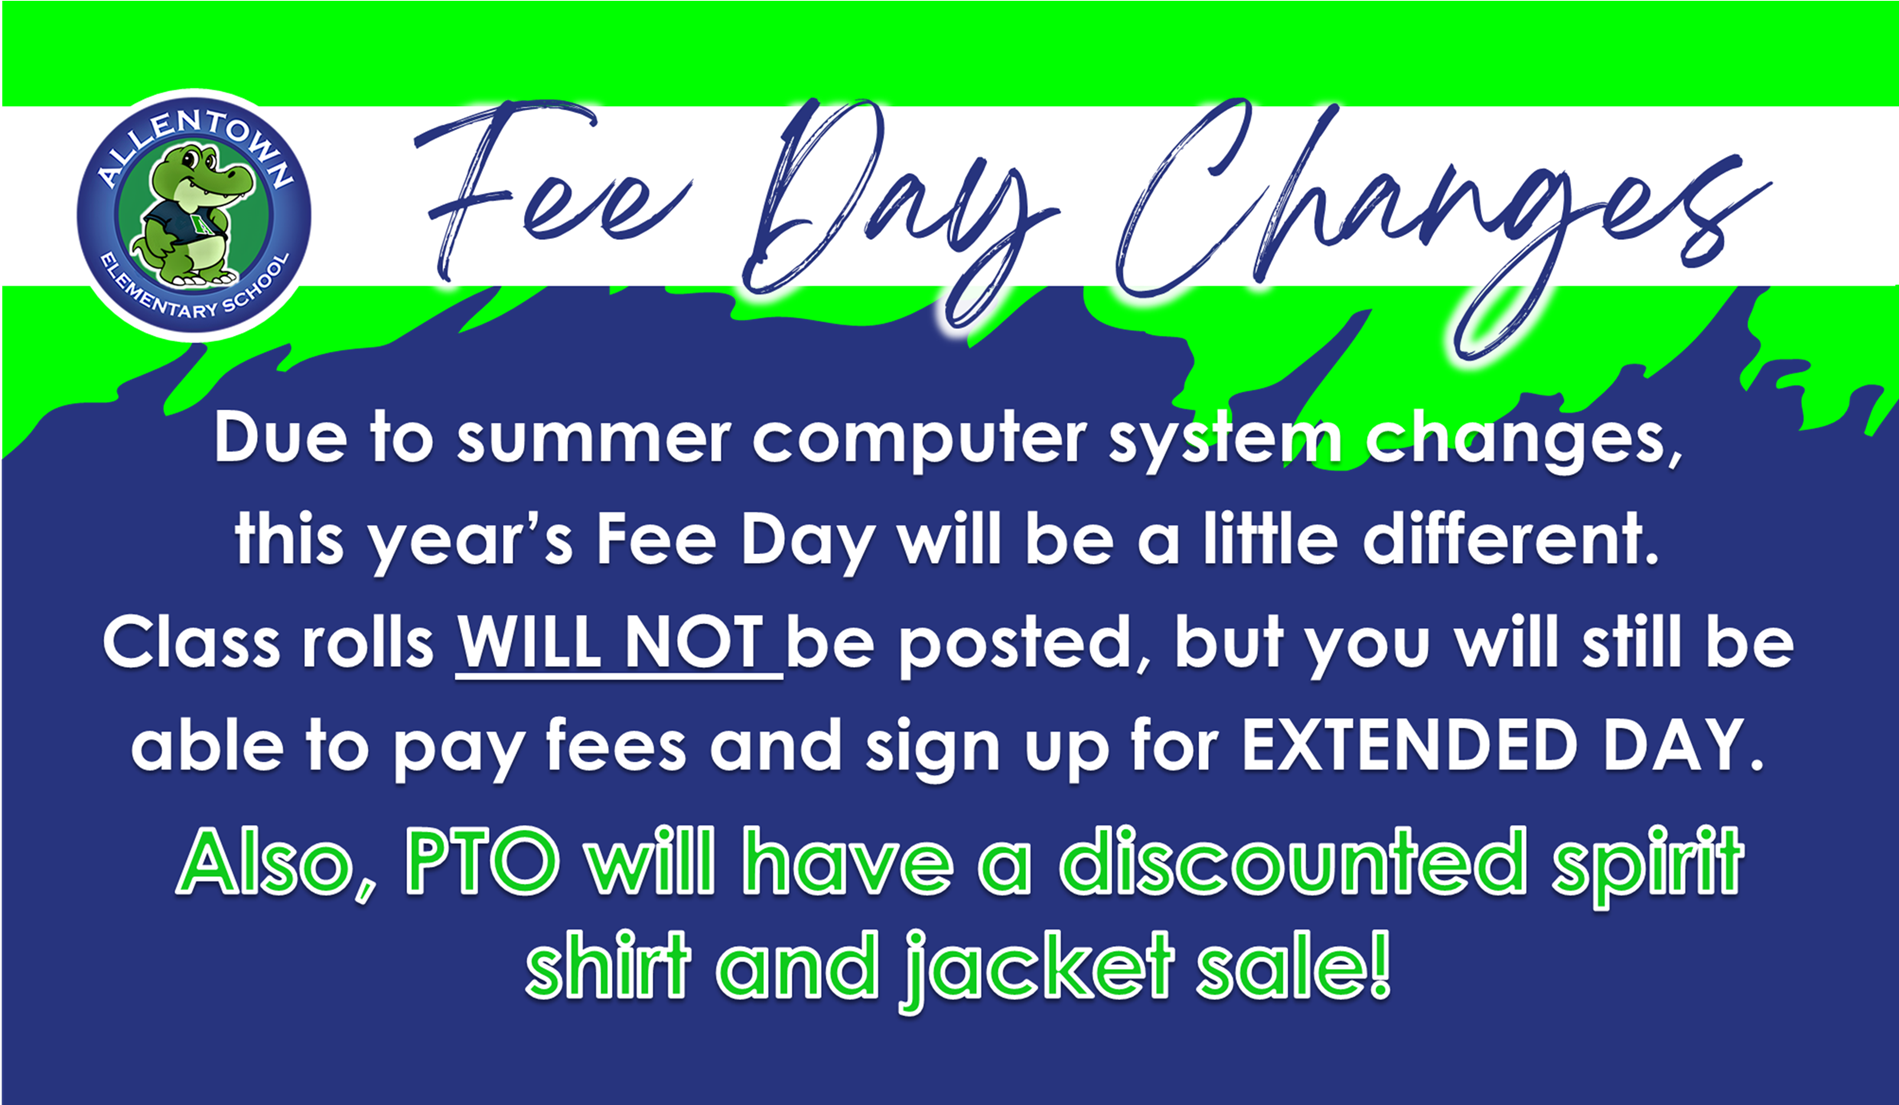 Fee Day Changes